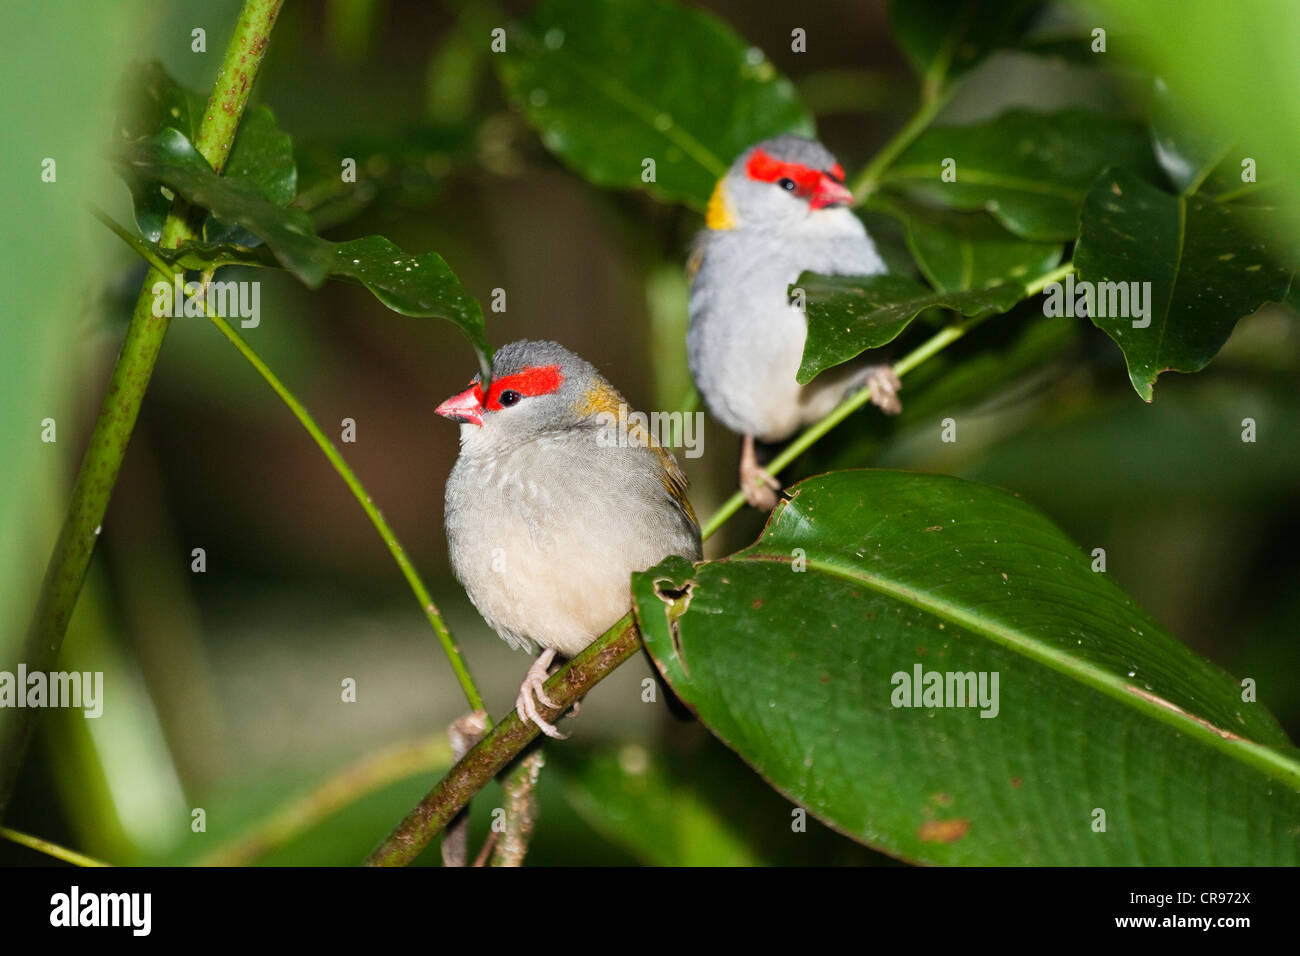 Pair of Red-browed Finches (Neochmia temporalis), Queensland, Australia - Stock Image